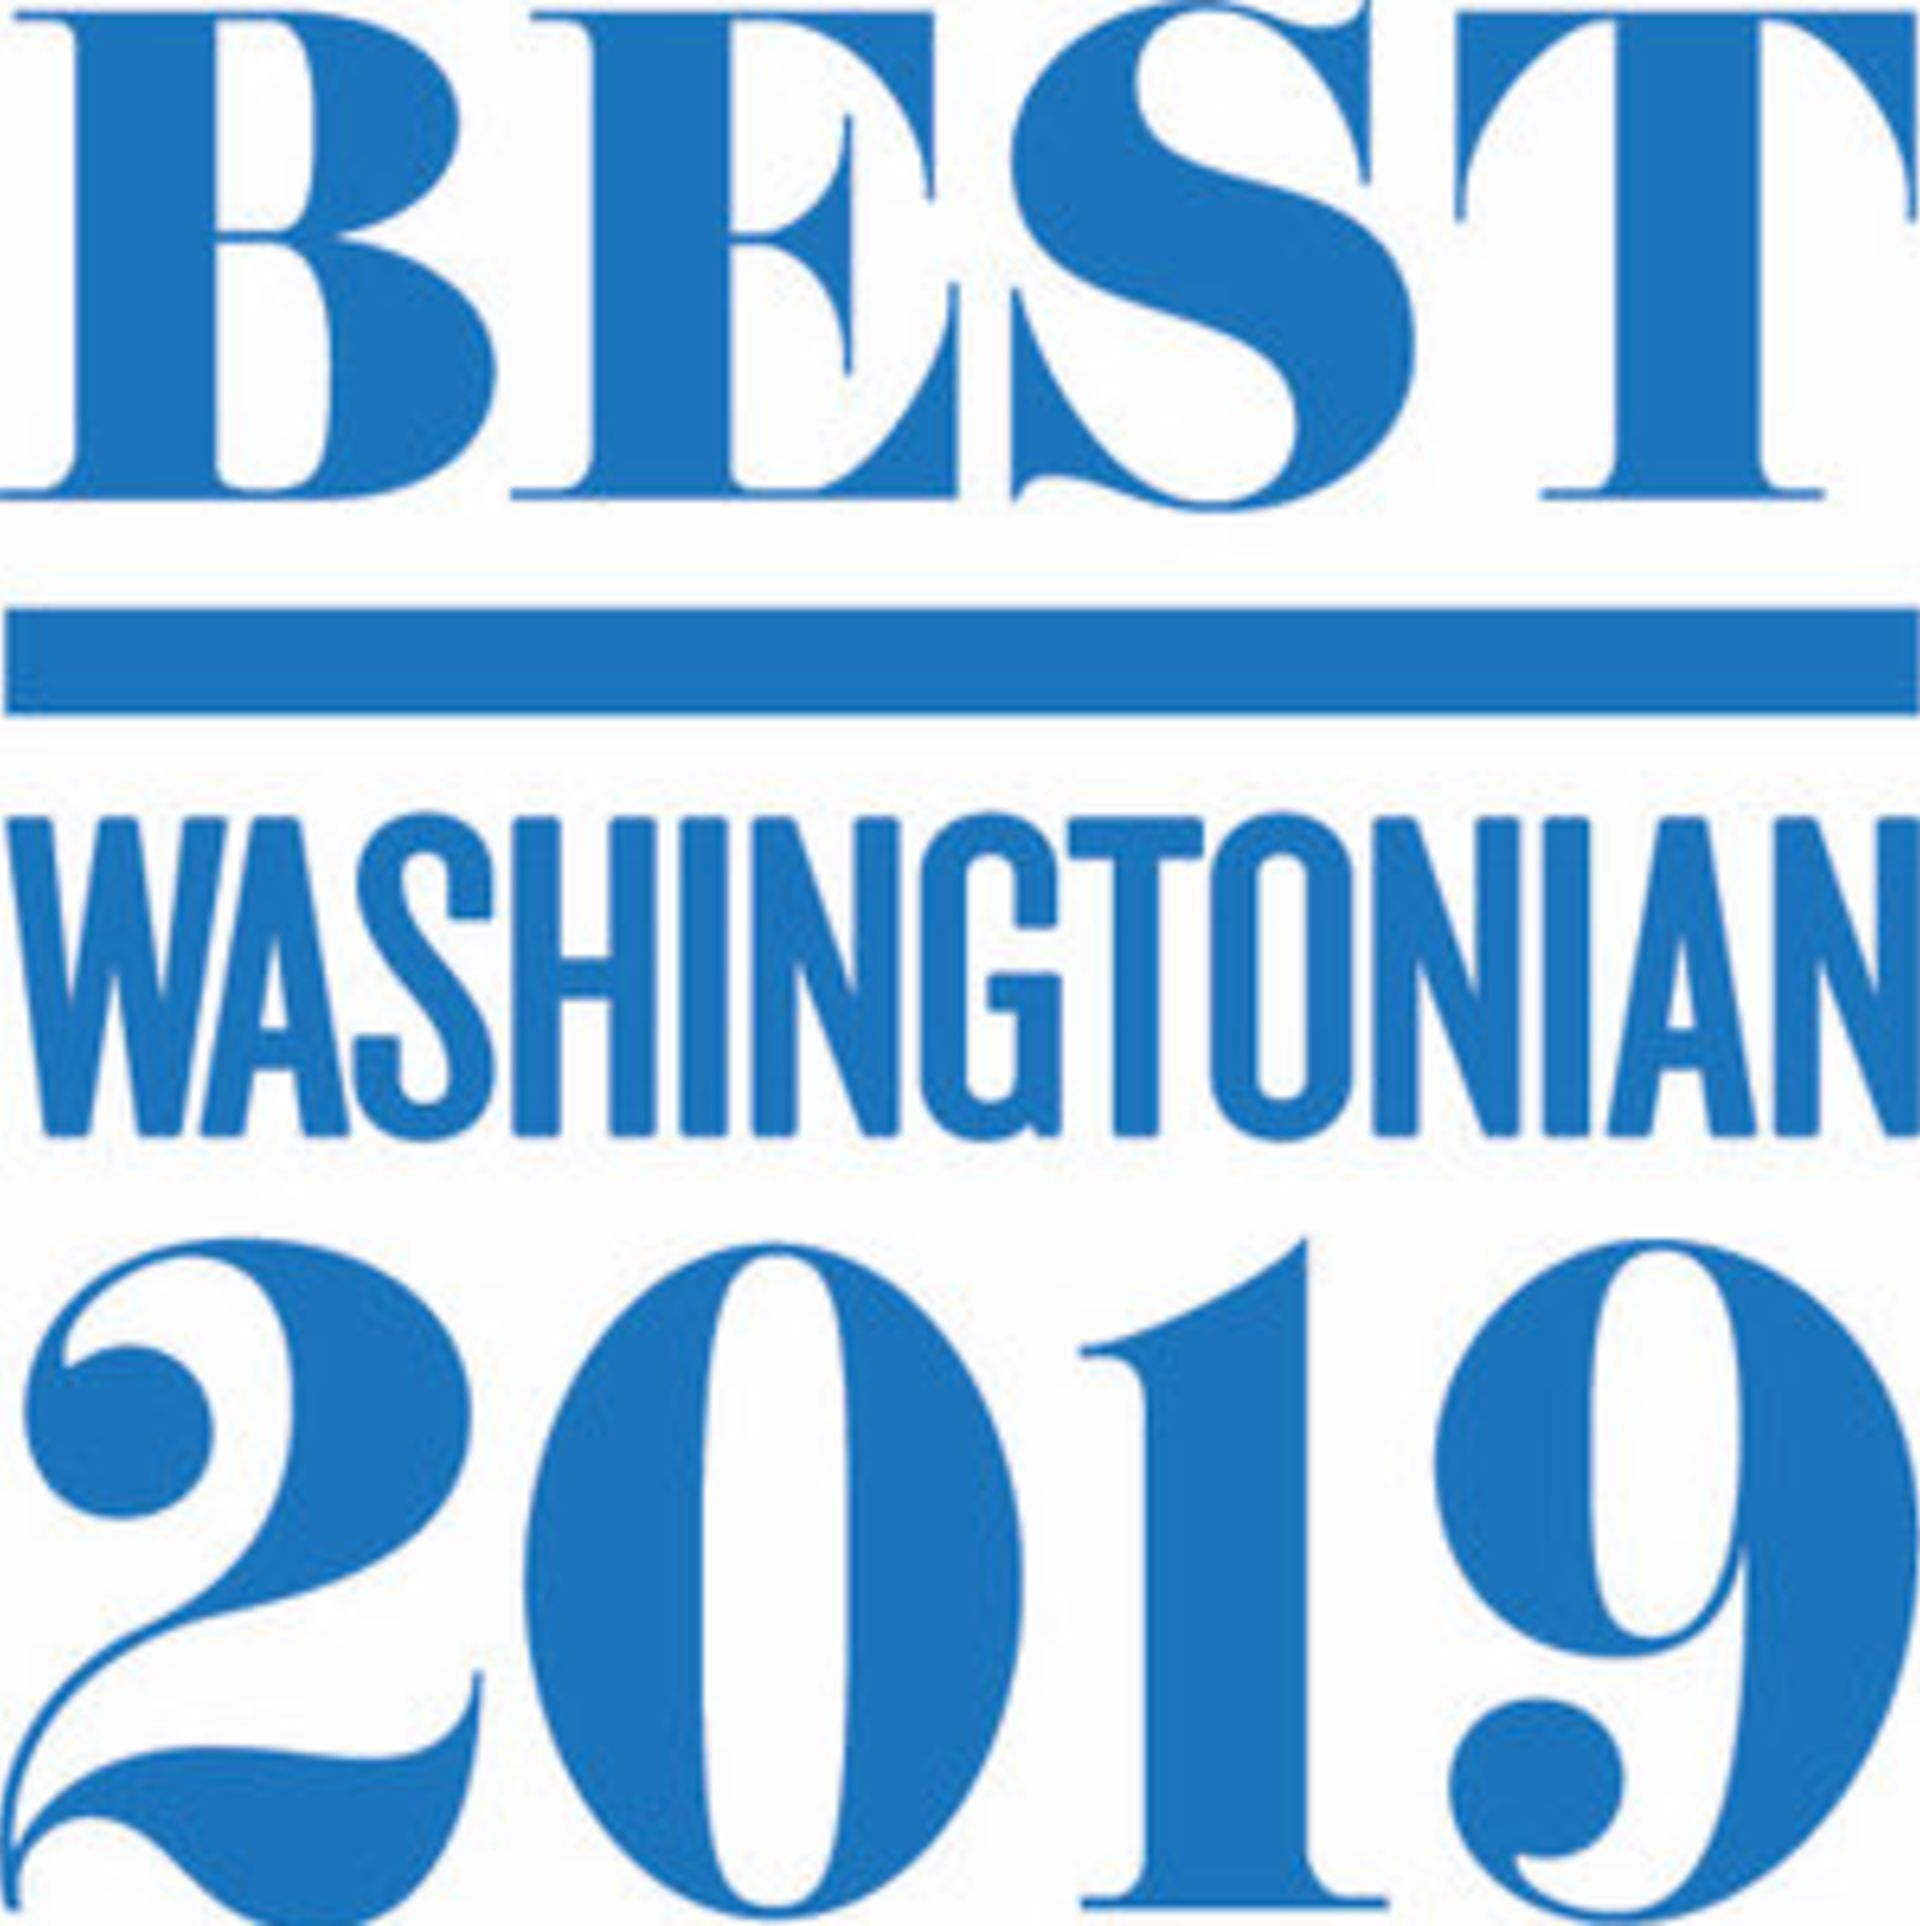 Washingtonian Best 2019